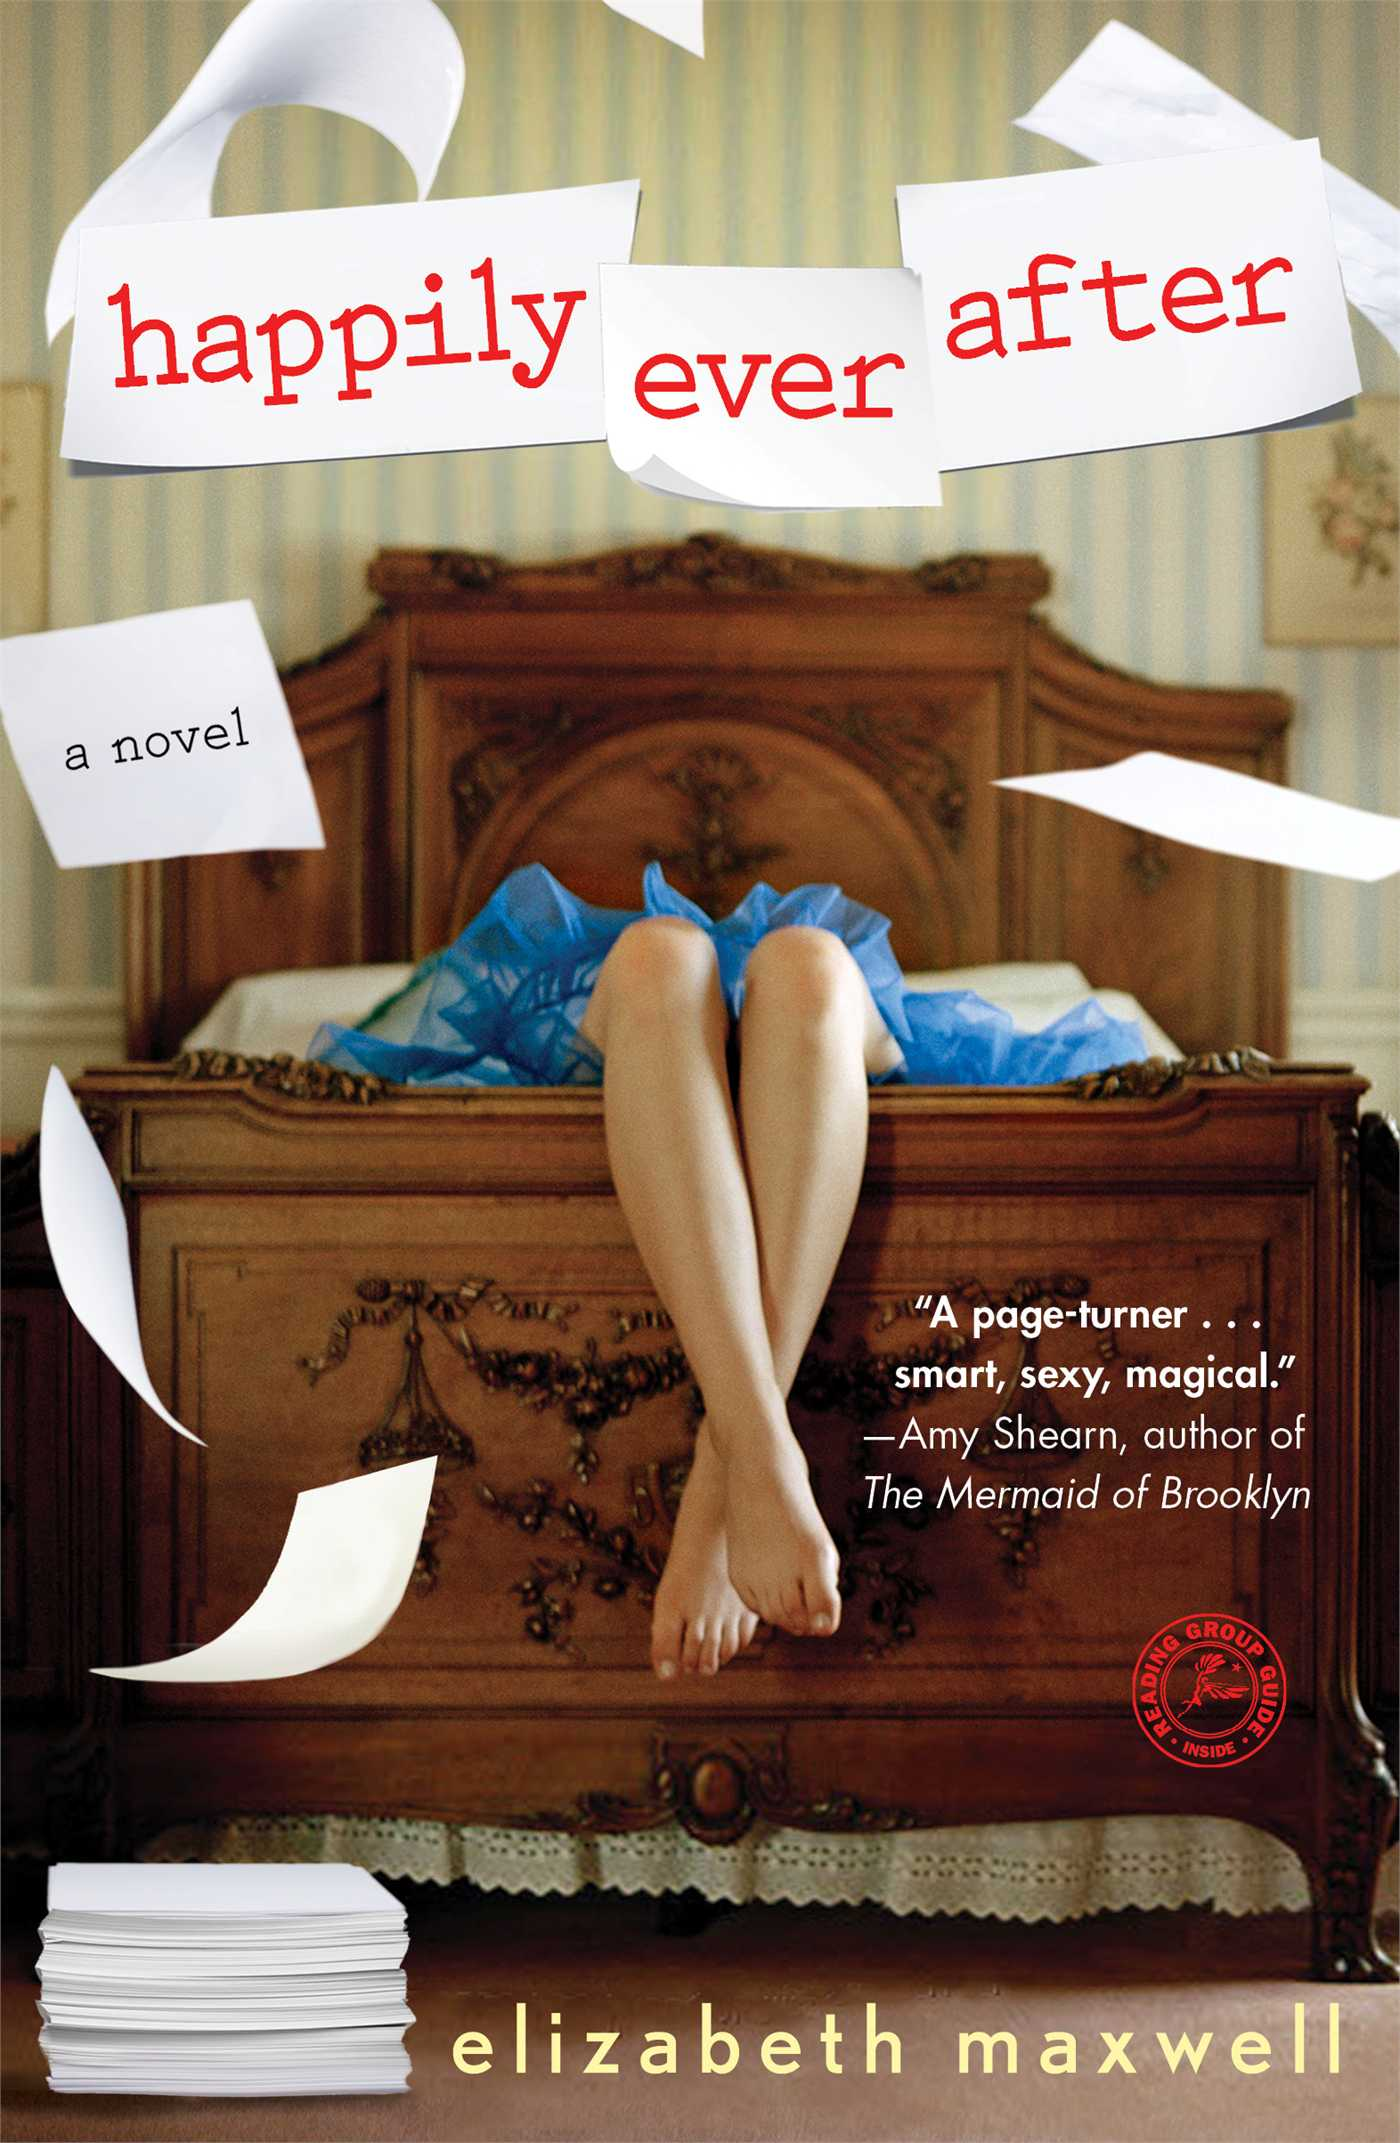 Happily-ever-after-9781476732664_hr